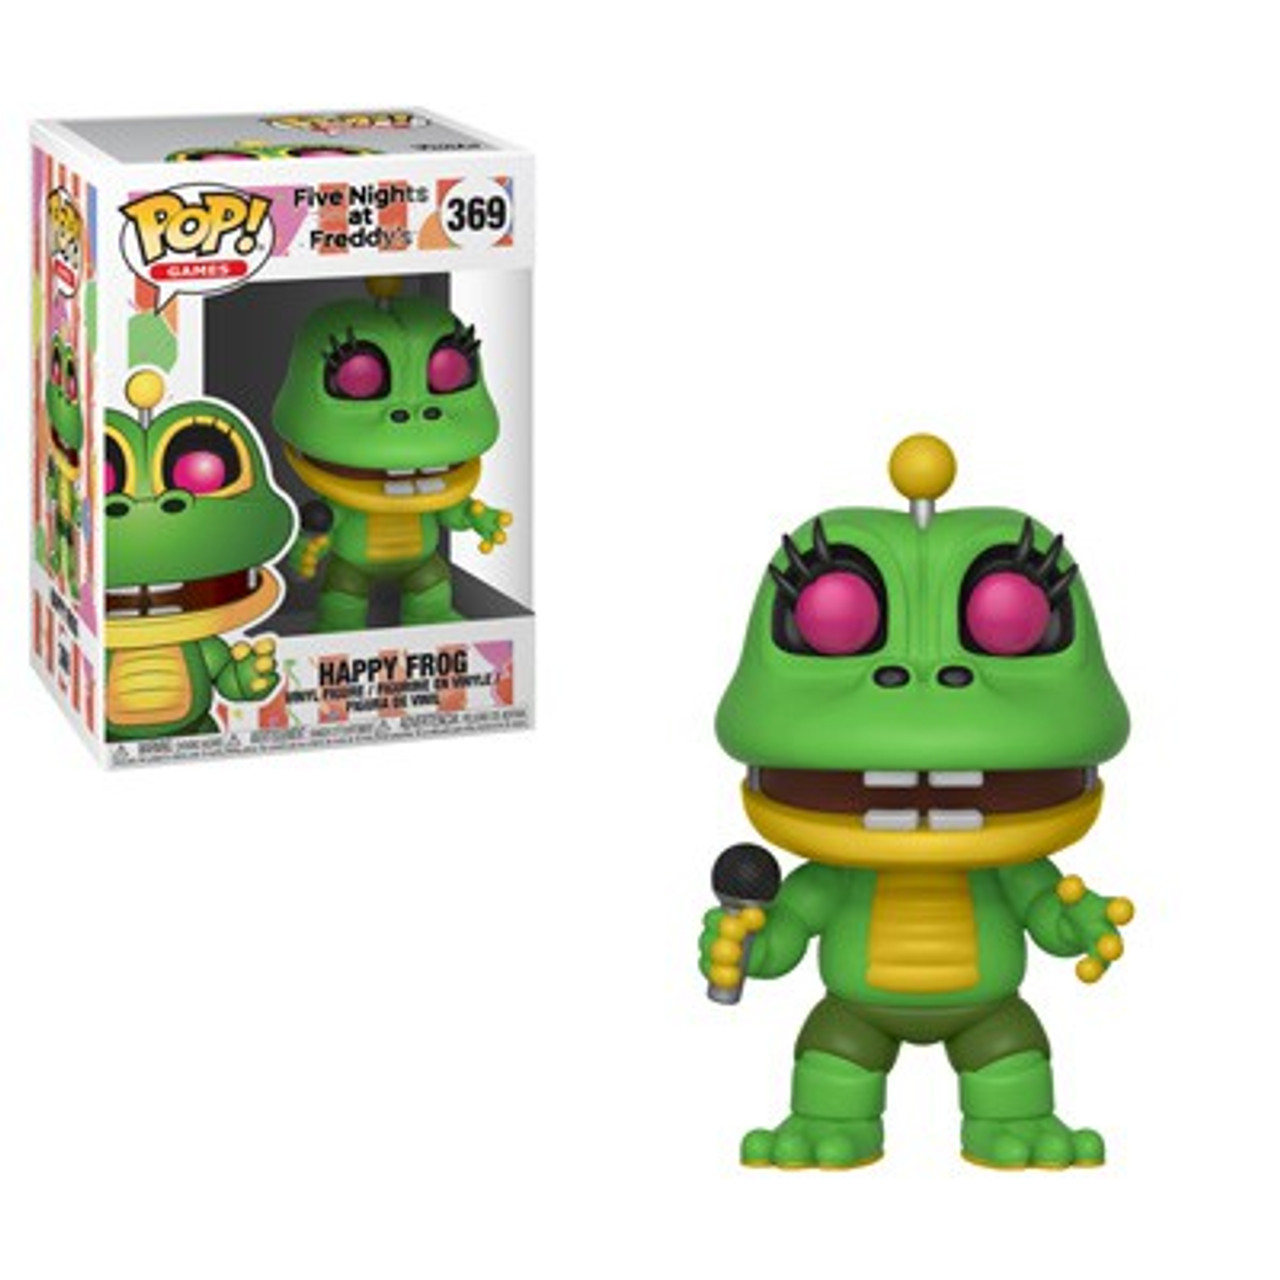 Five Nights At Freddy /'Simulador De Pizza-Rana feliz #369 vinilo Funko Pop!